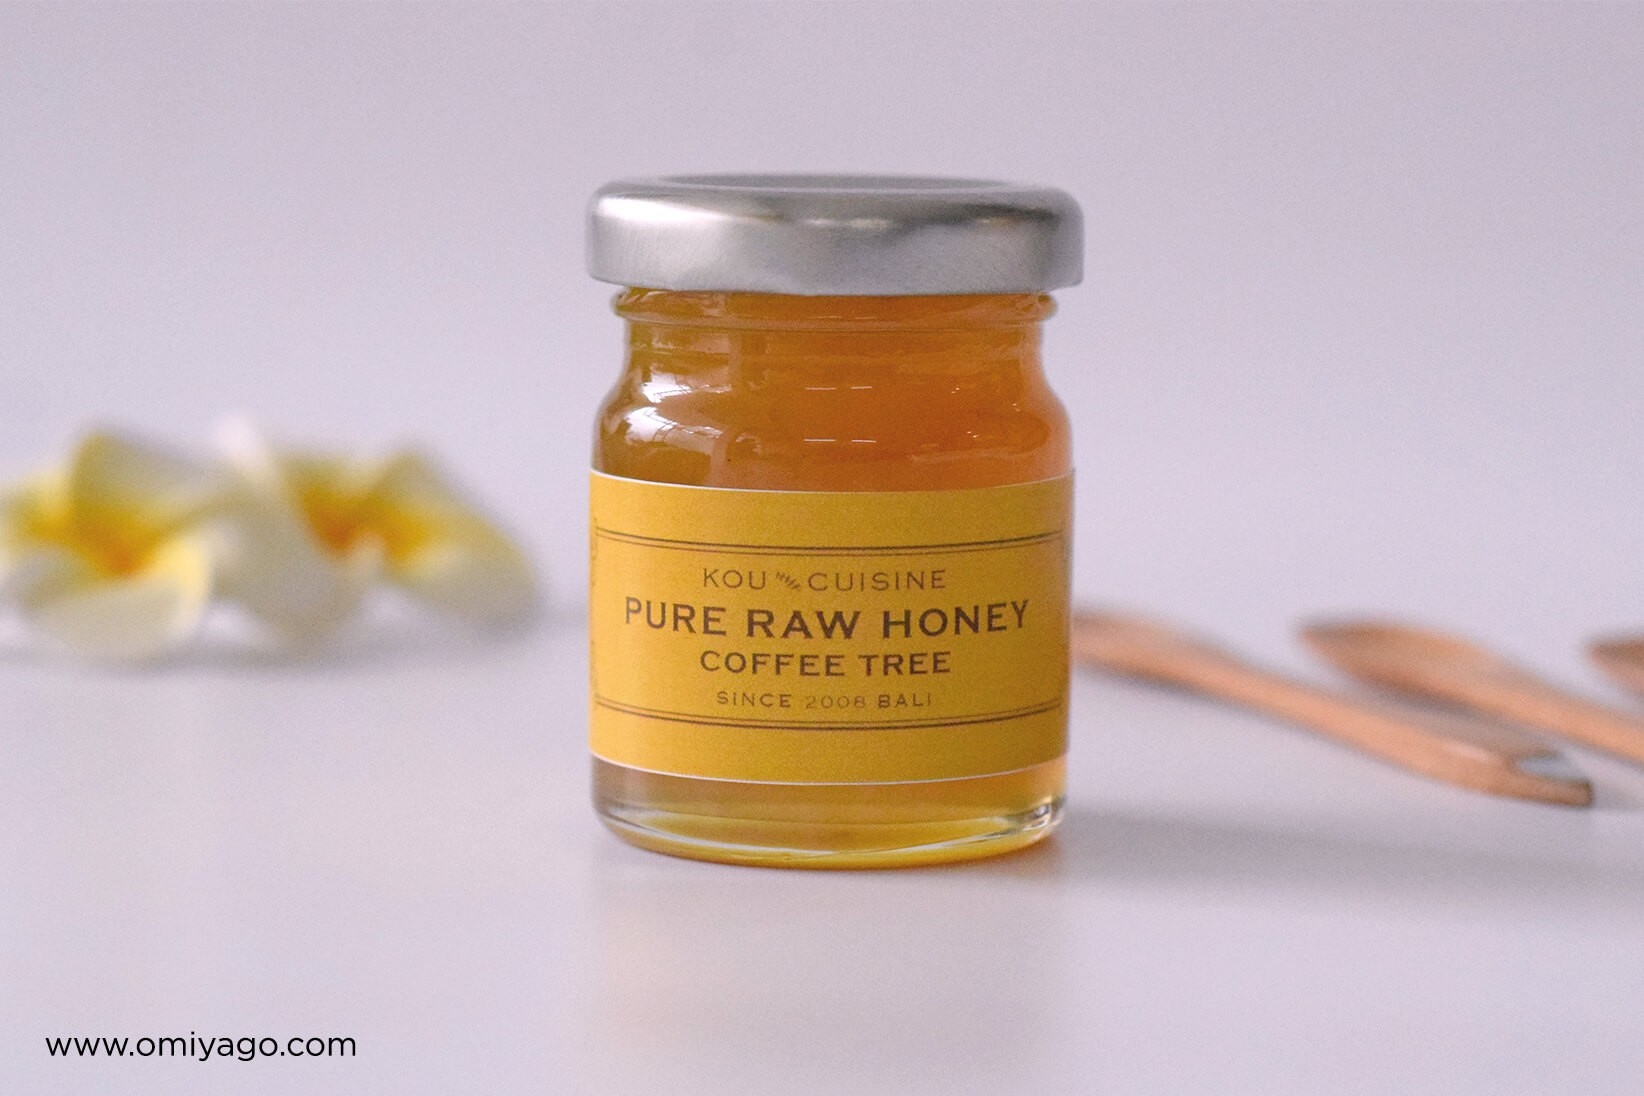 Raw_Honey_Coffee_Tree_Kou_Cuisine